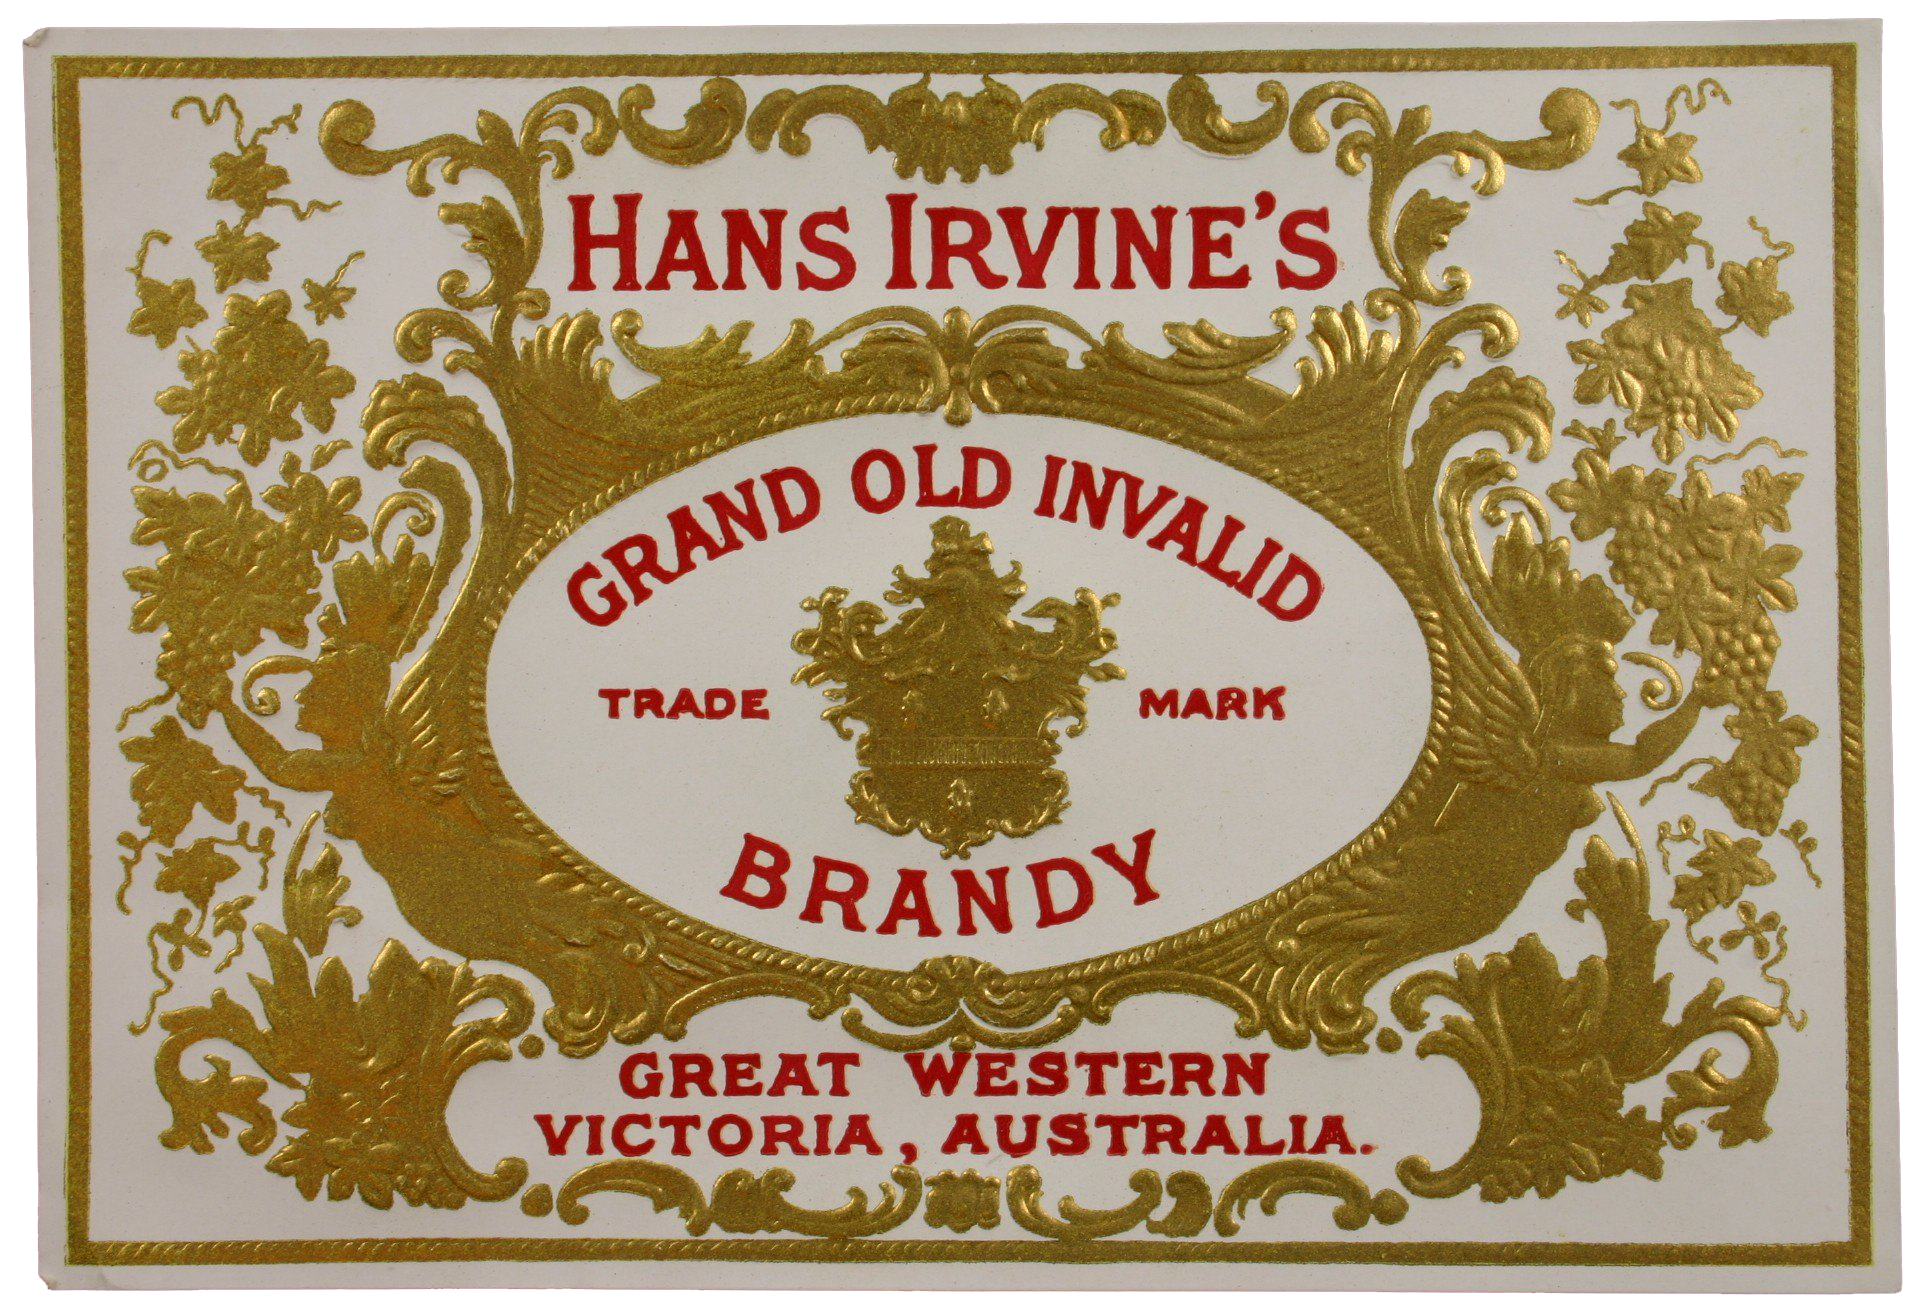 Source: Great Western Winery, Brandy, 'Grand Old Invalid', 1888-1918